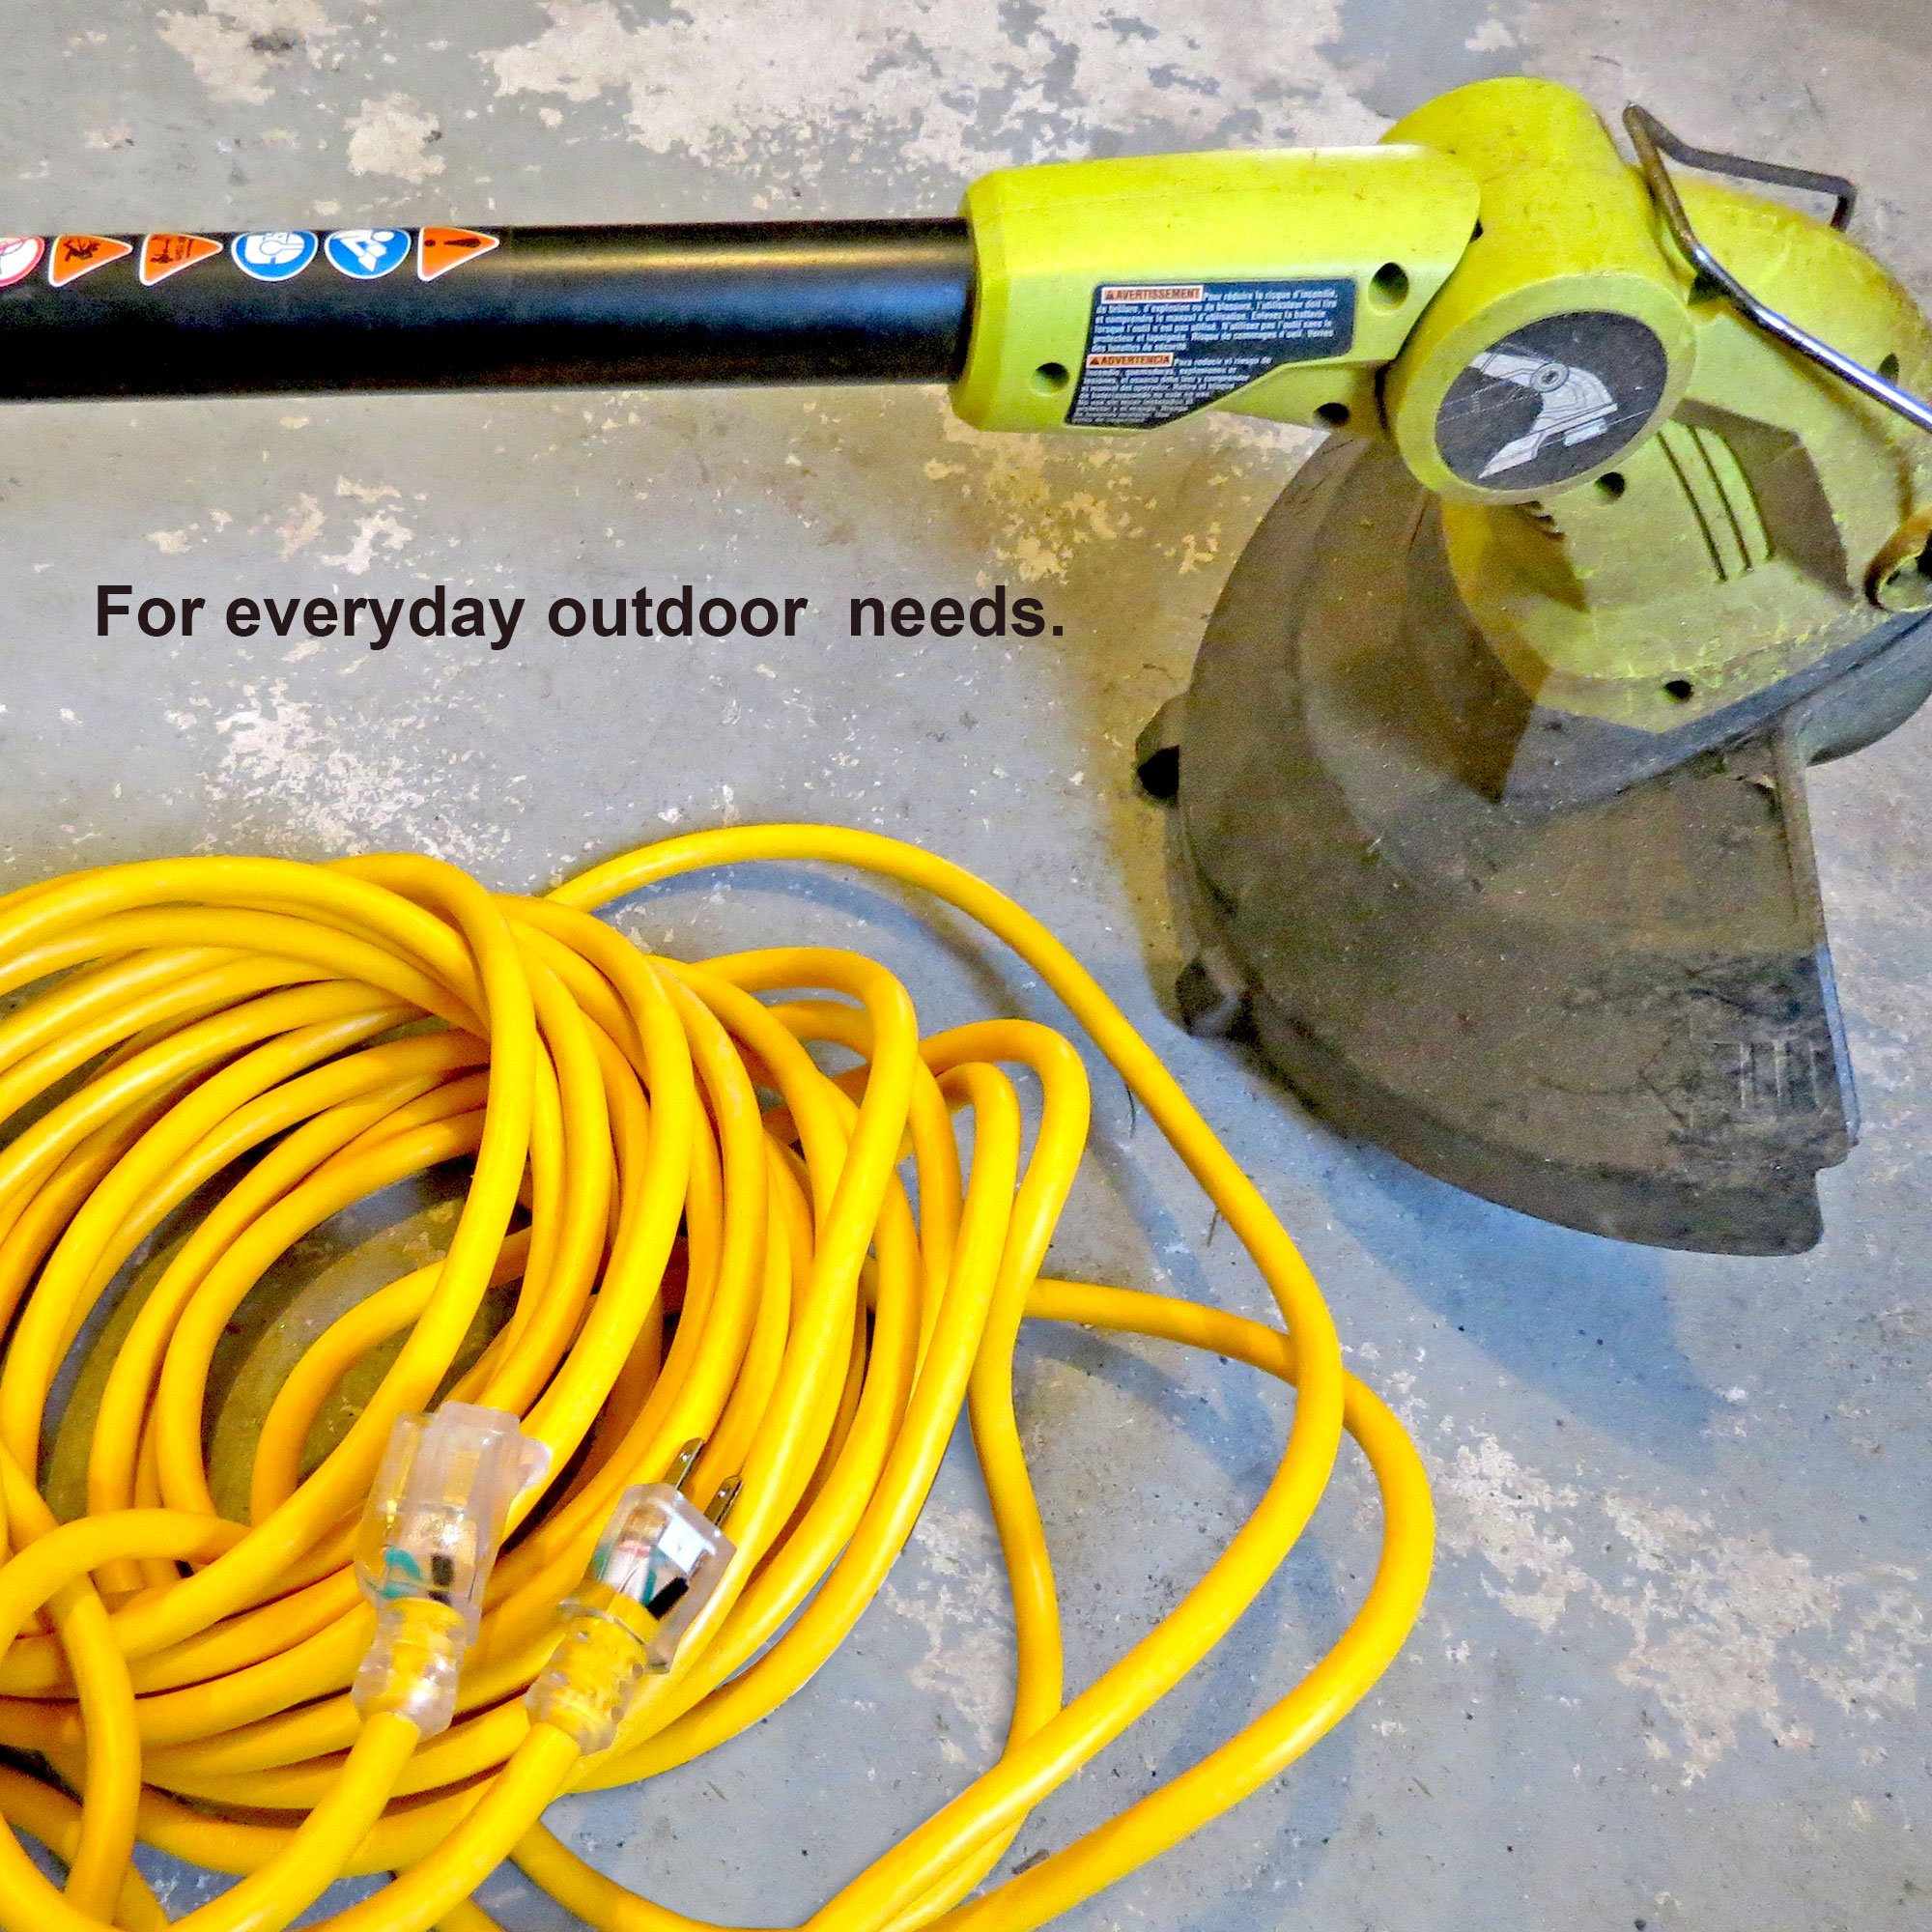 Outdoor Extension Cord - 12/3 SJTW Heavy Duty Yellow 3 Prong Extension Cable - Great for Garden and Major Appliances (100 Foot - Yellow) by Iron Forge Cable (Image #6)